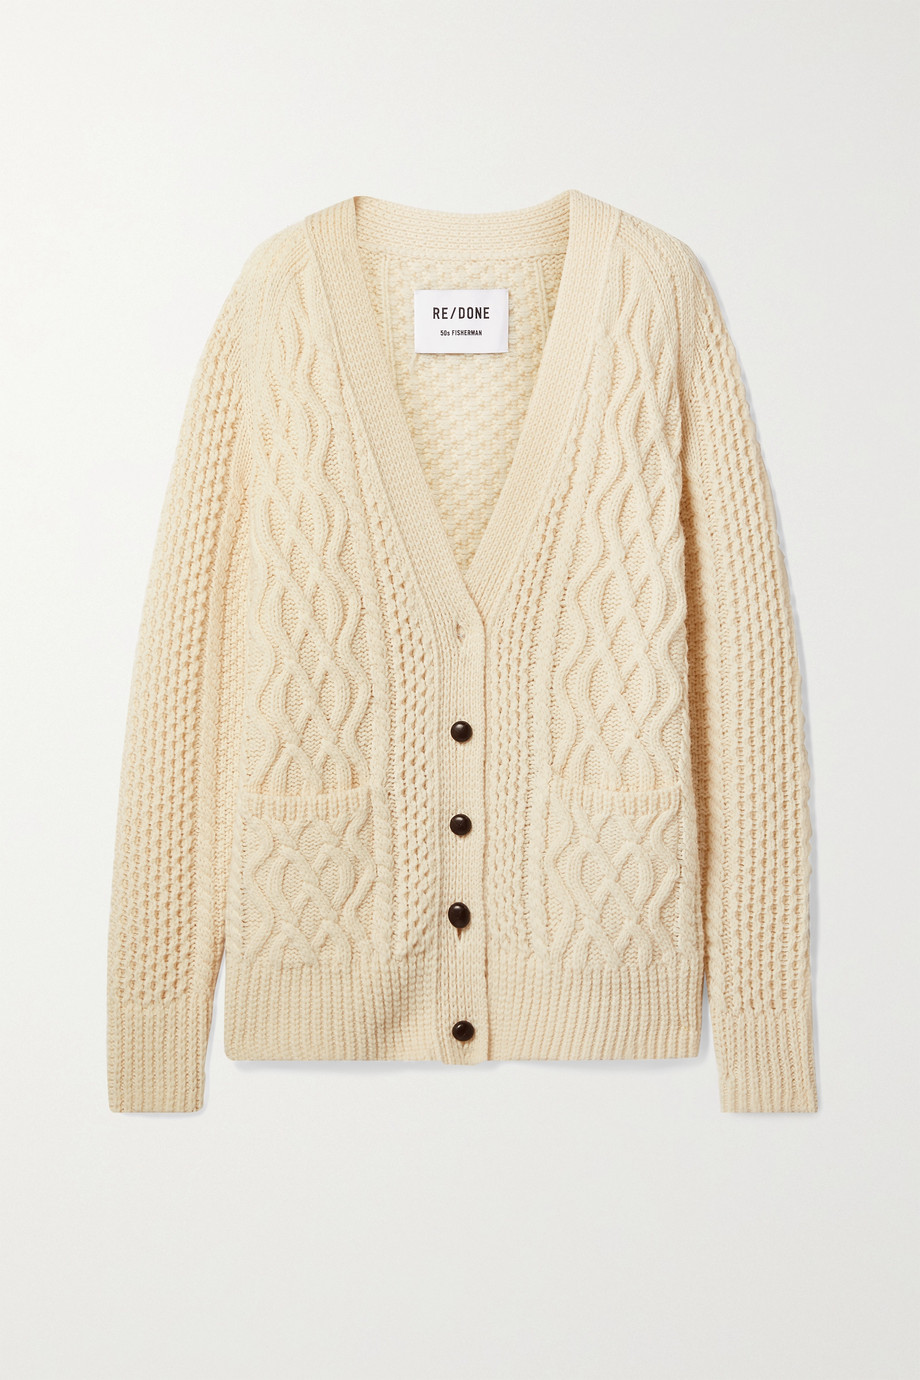 RE/DONE 50s cable-knit wool cardgian